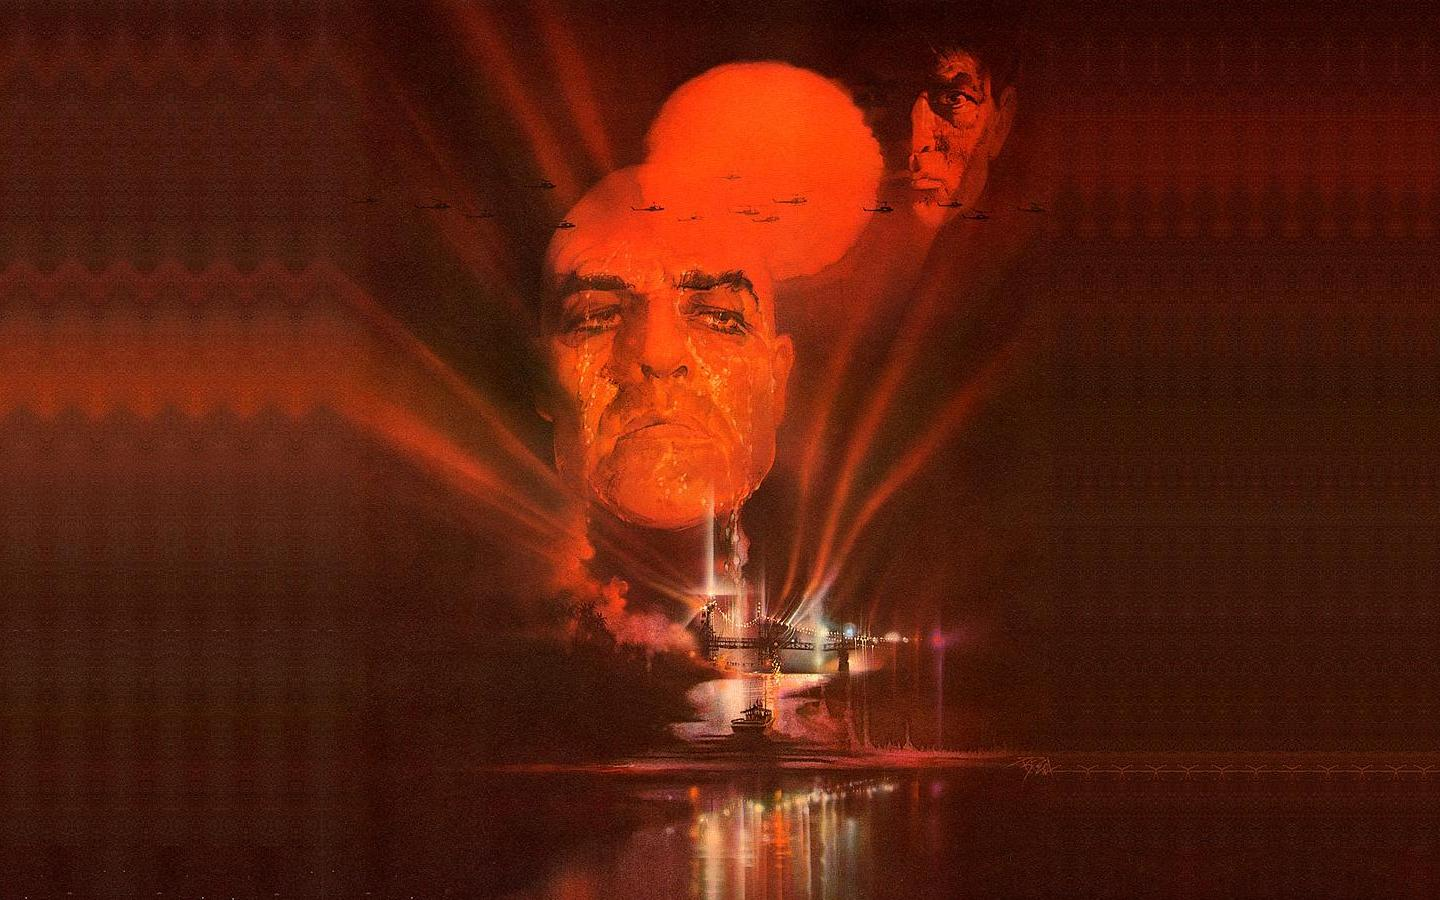 Apocalypse Now Wallpaper   ForWallpapercom 1440x900